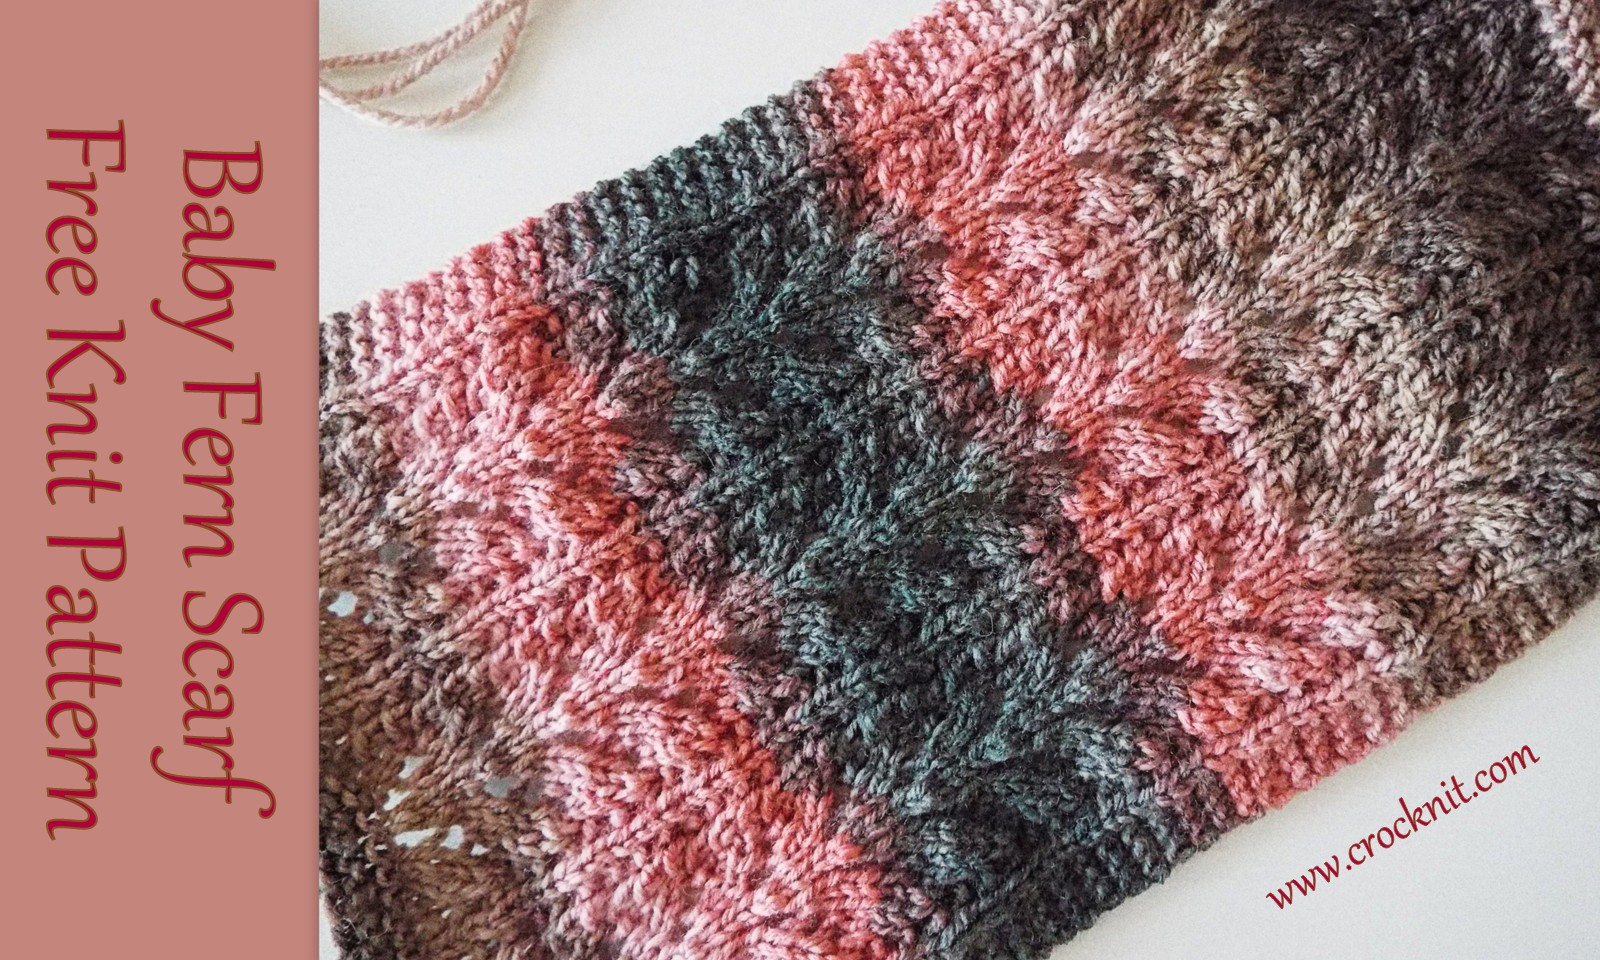 MICROCKNIT CREATIONS: Knit me a Vintage Lace Scarf